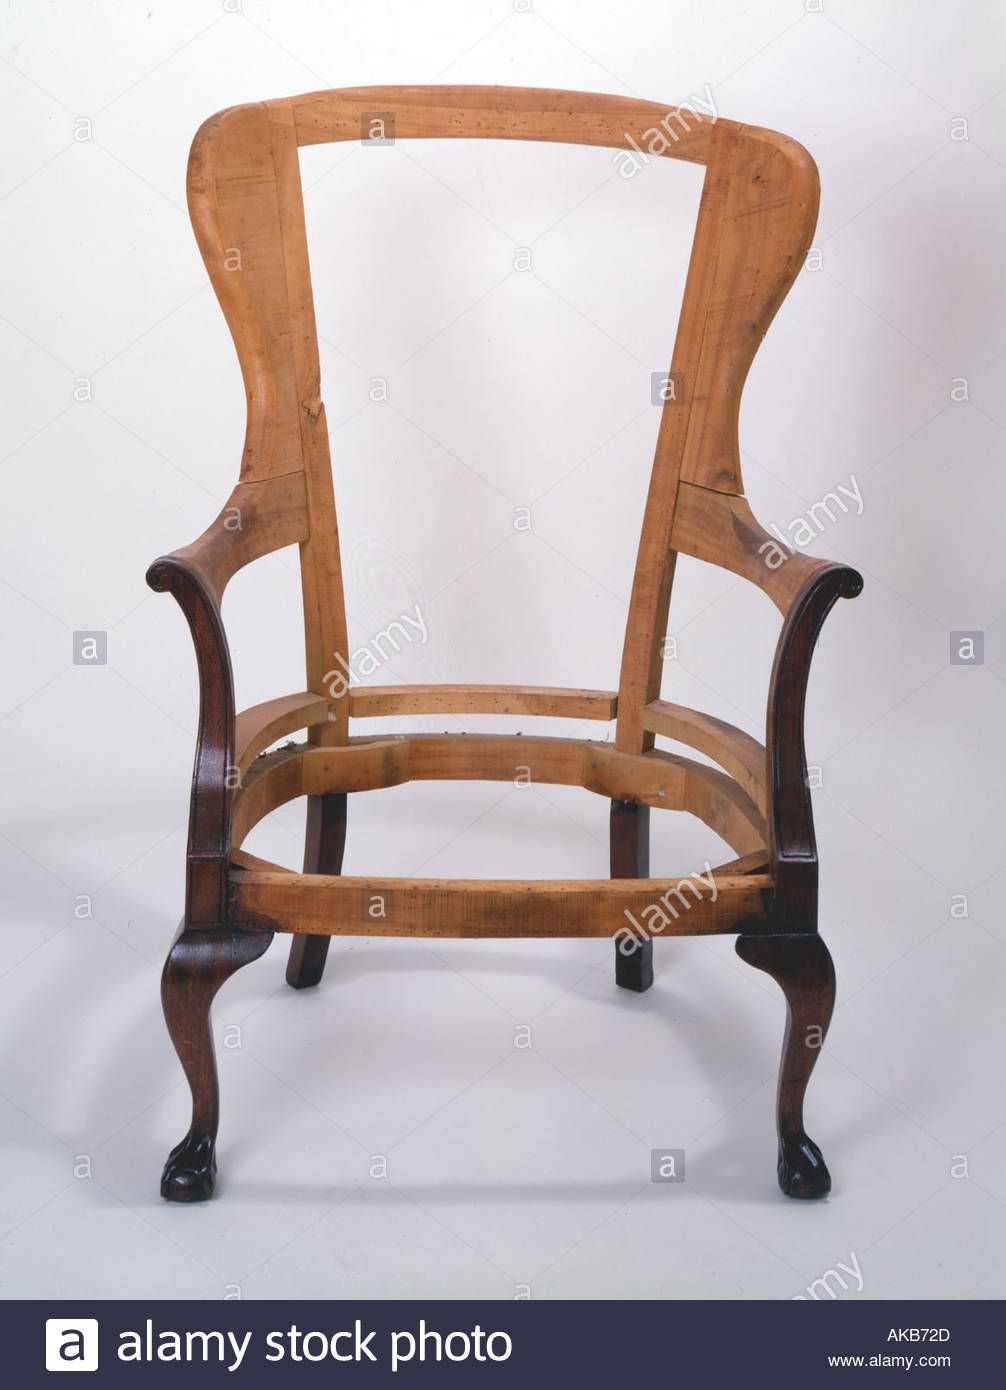 handmade wooden chairs swing chair covers argos frame stock photo 1292076 alamy